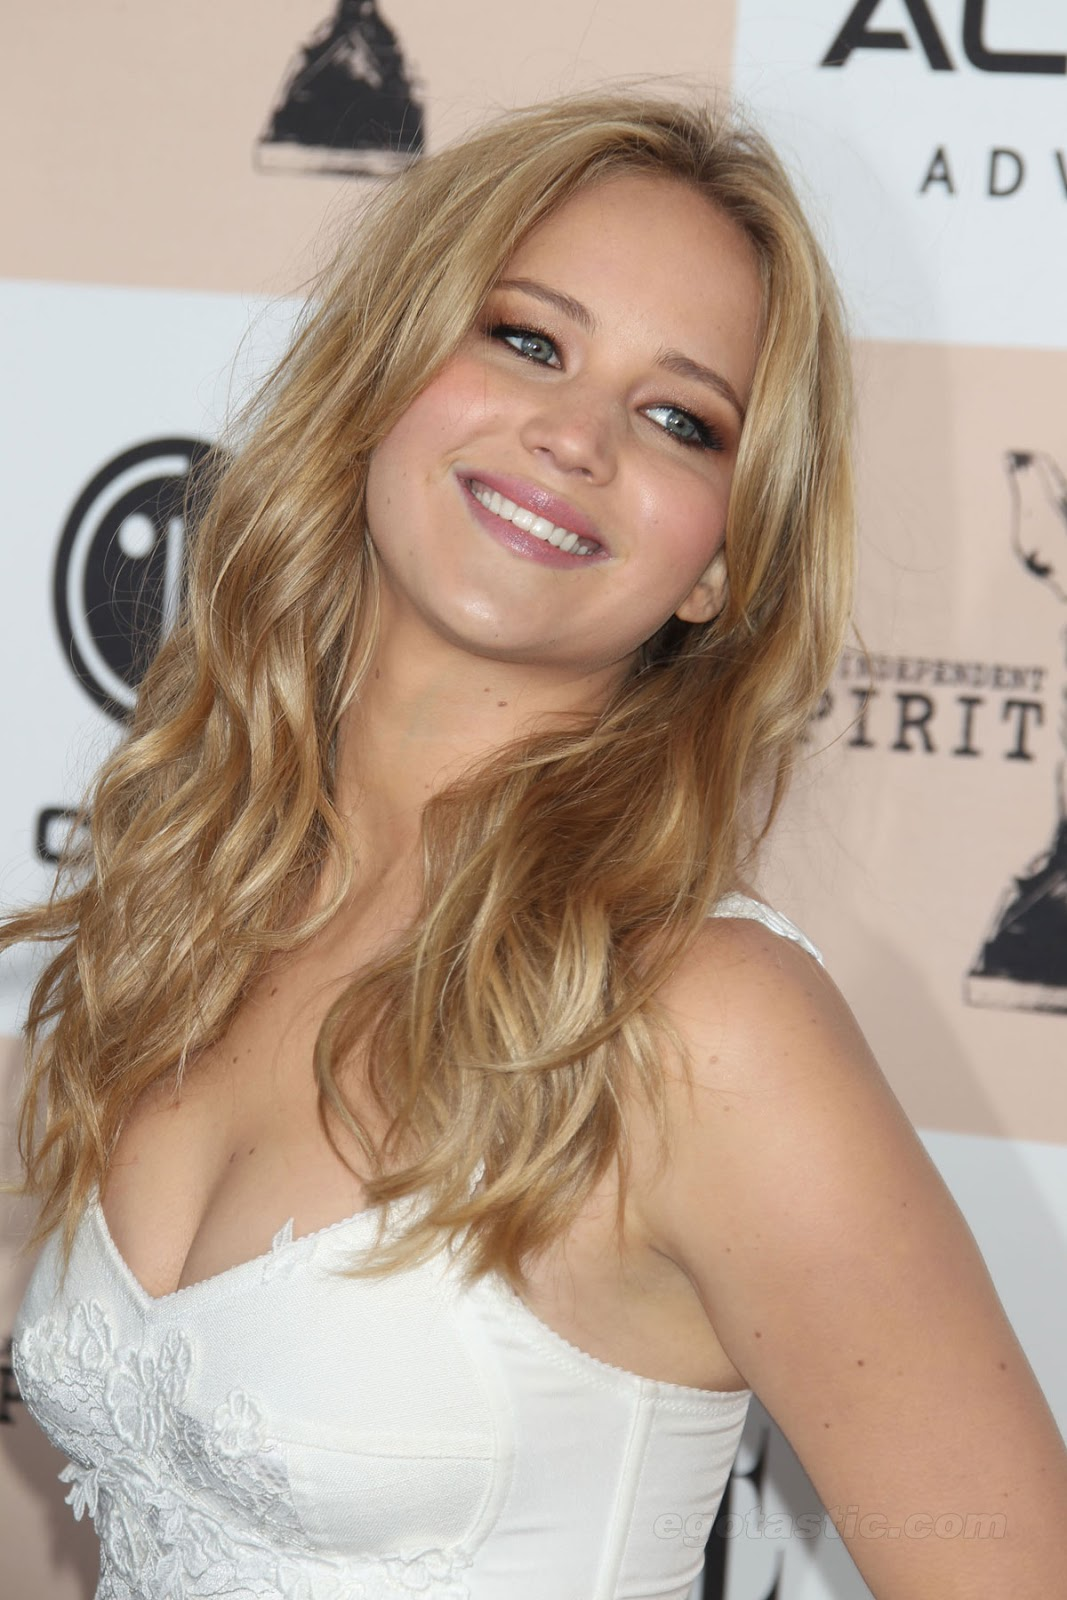 Jennifer Lawrence Makeup Tutorial: Jennifer Lawrence Bikini Pics